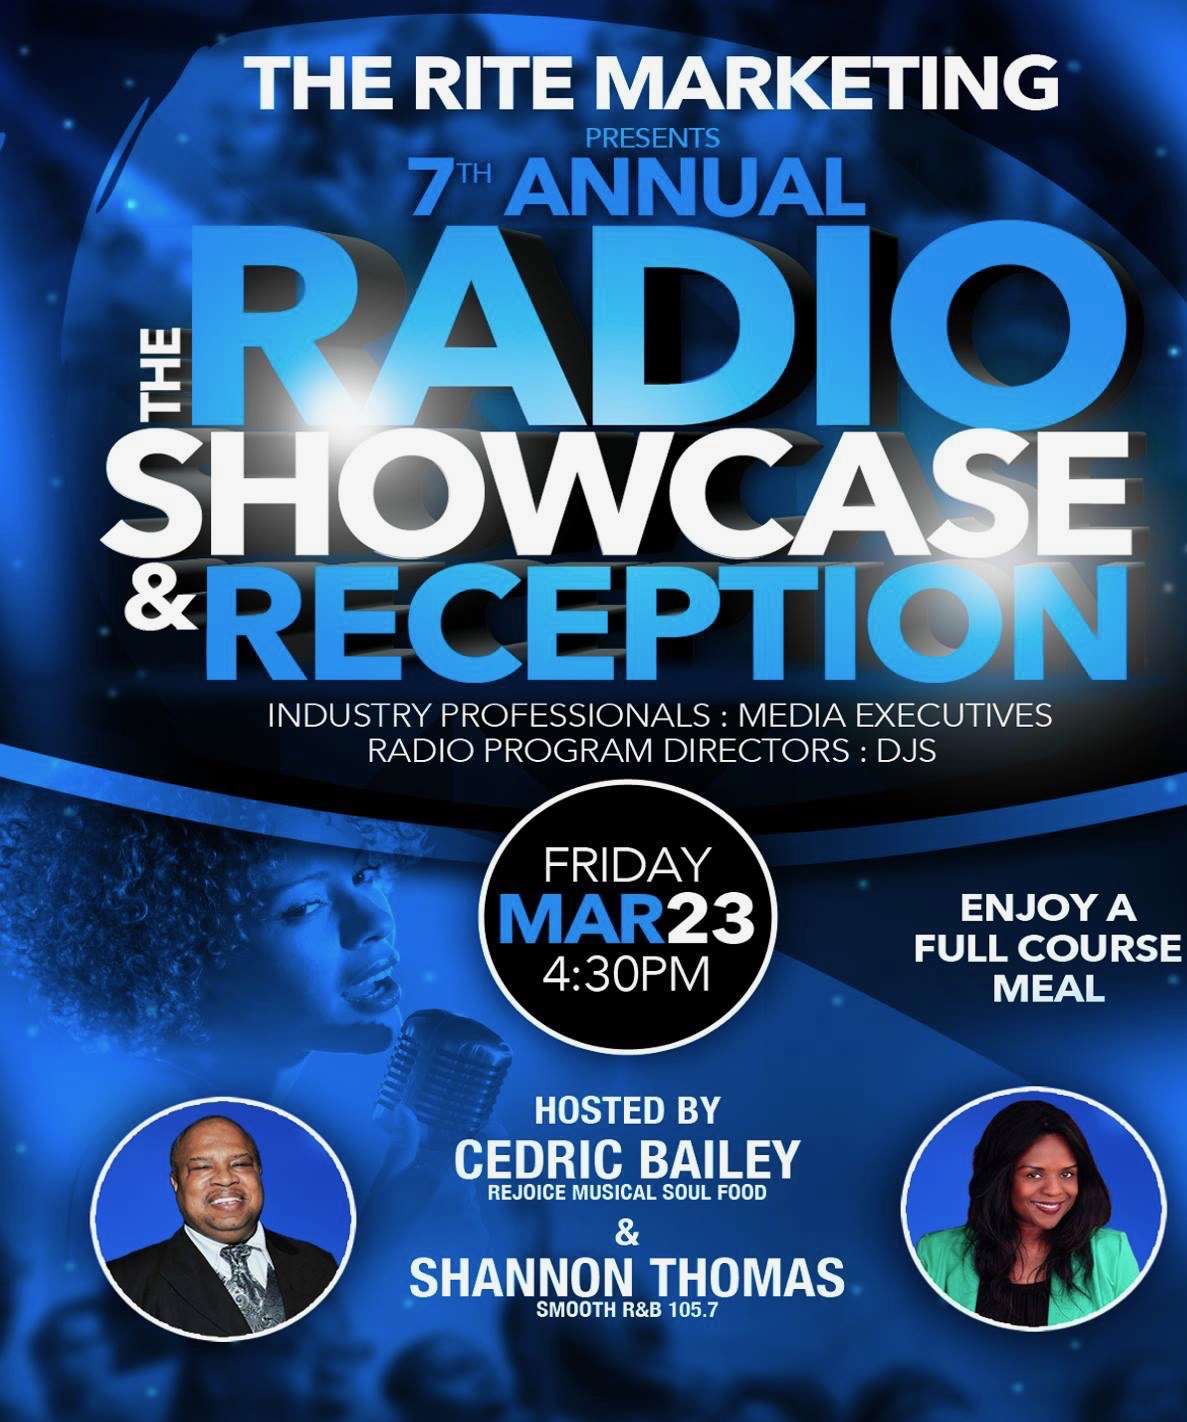 The Rite Marketing Group Presents The 7th Annual Radio Showcase Reception; A Pay-Per-View Event Co-Hosted by Cedric Bailey and Shannon Thomas, Red Carpet Hosted by Rubi Green and Emcee N.I.C.E